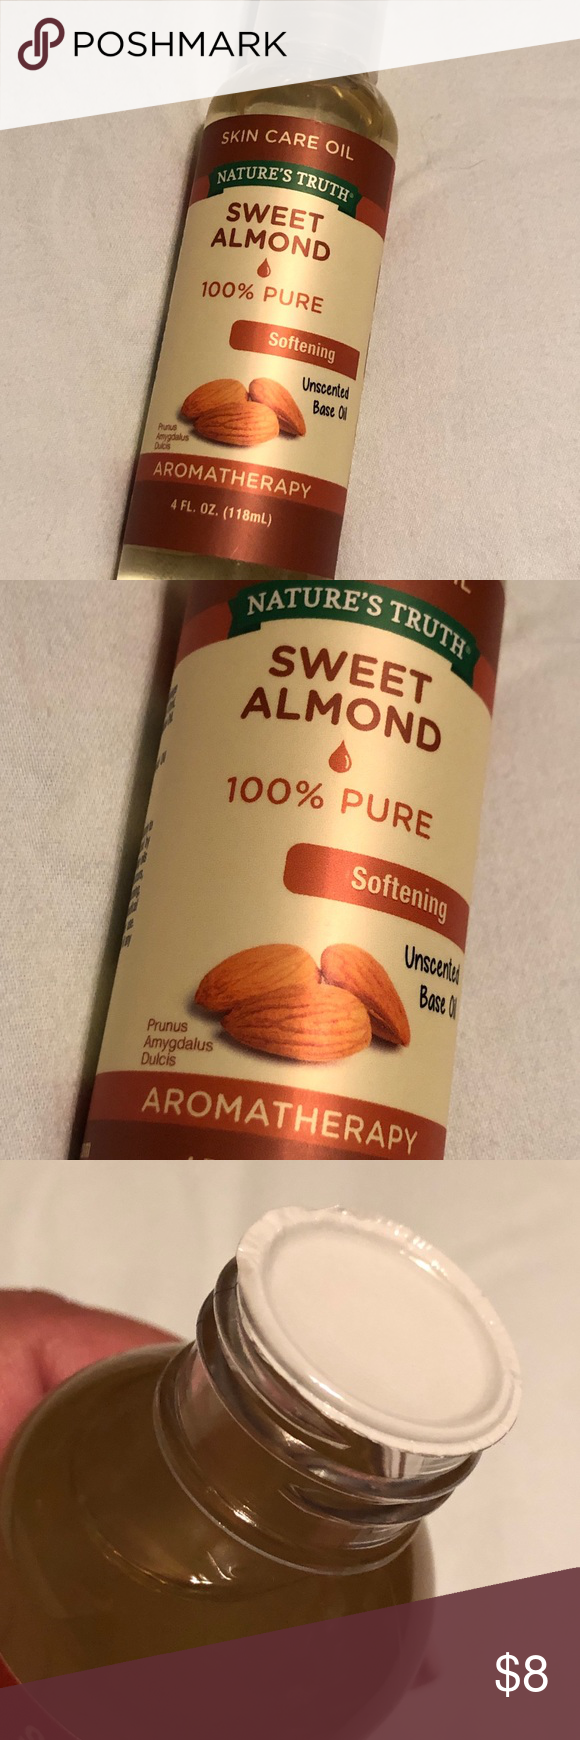 Nature S Truth Sweet Almond Oil New Sweet Almond Oil Paraben Free Products Almond Oil